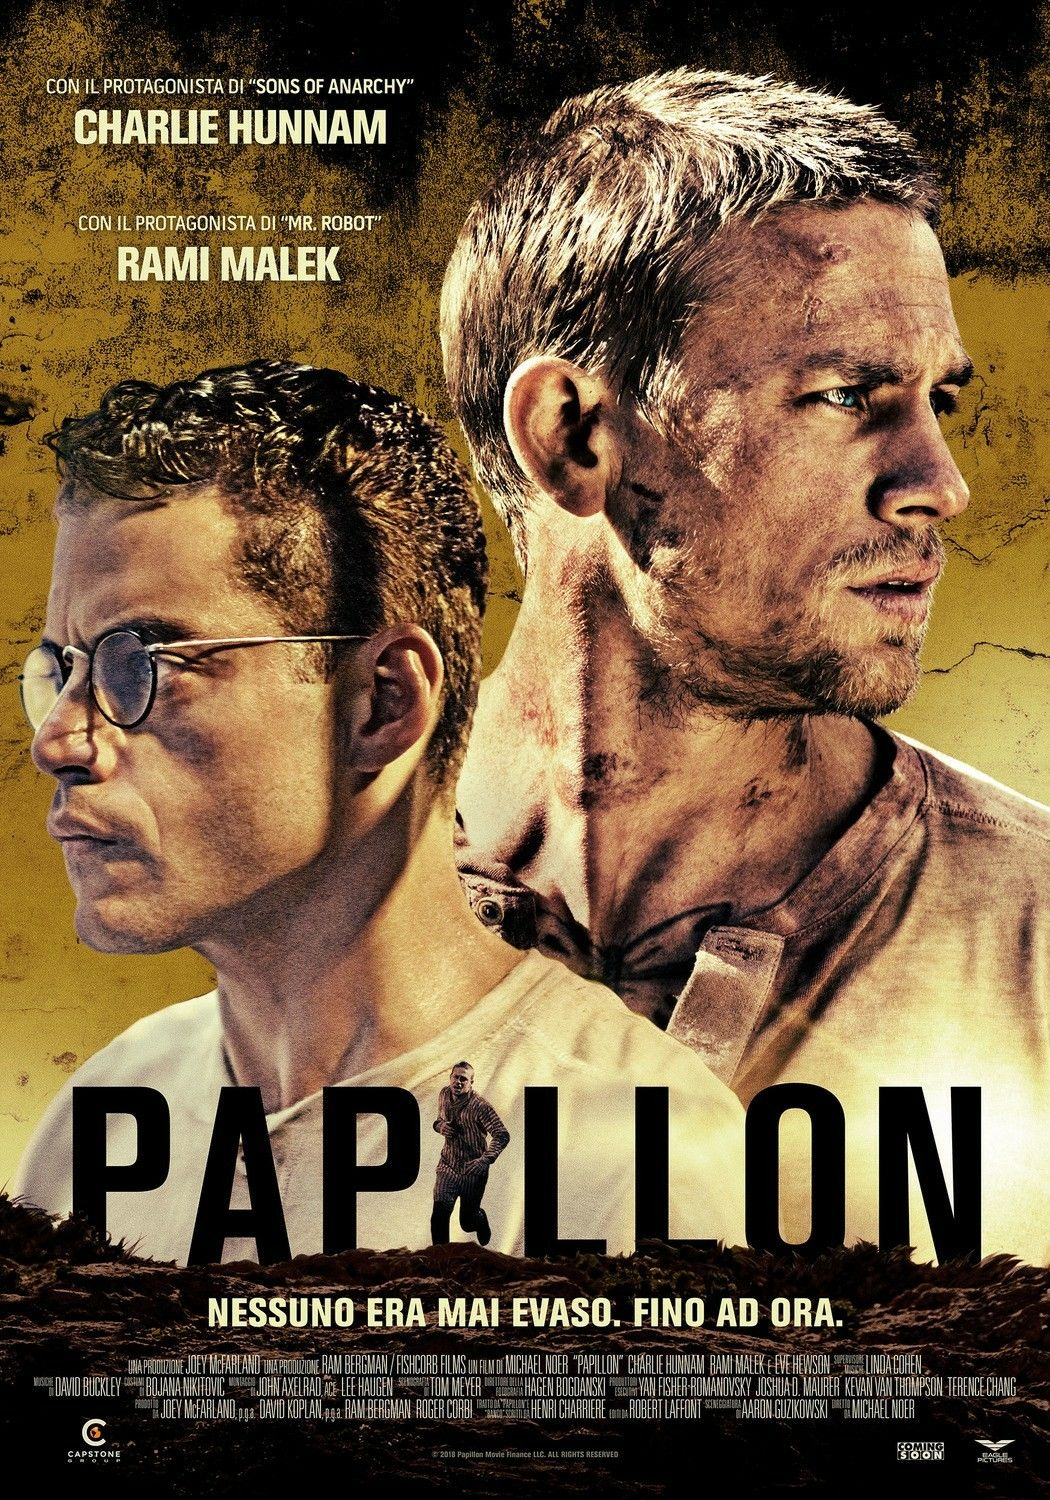 Papillon 2017 Movie Posters Full Movies Online Free Free Movies Online